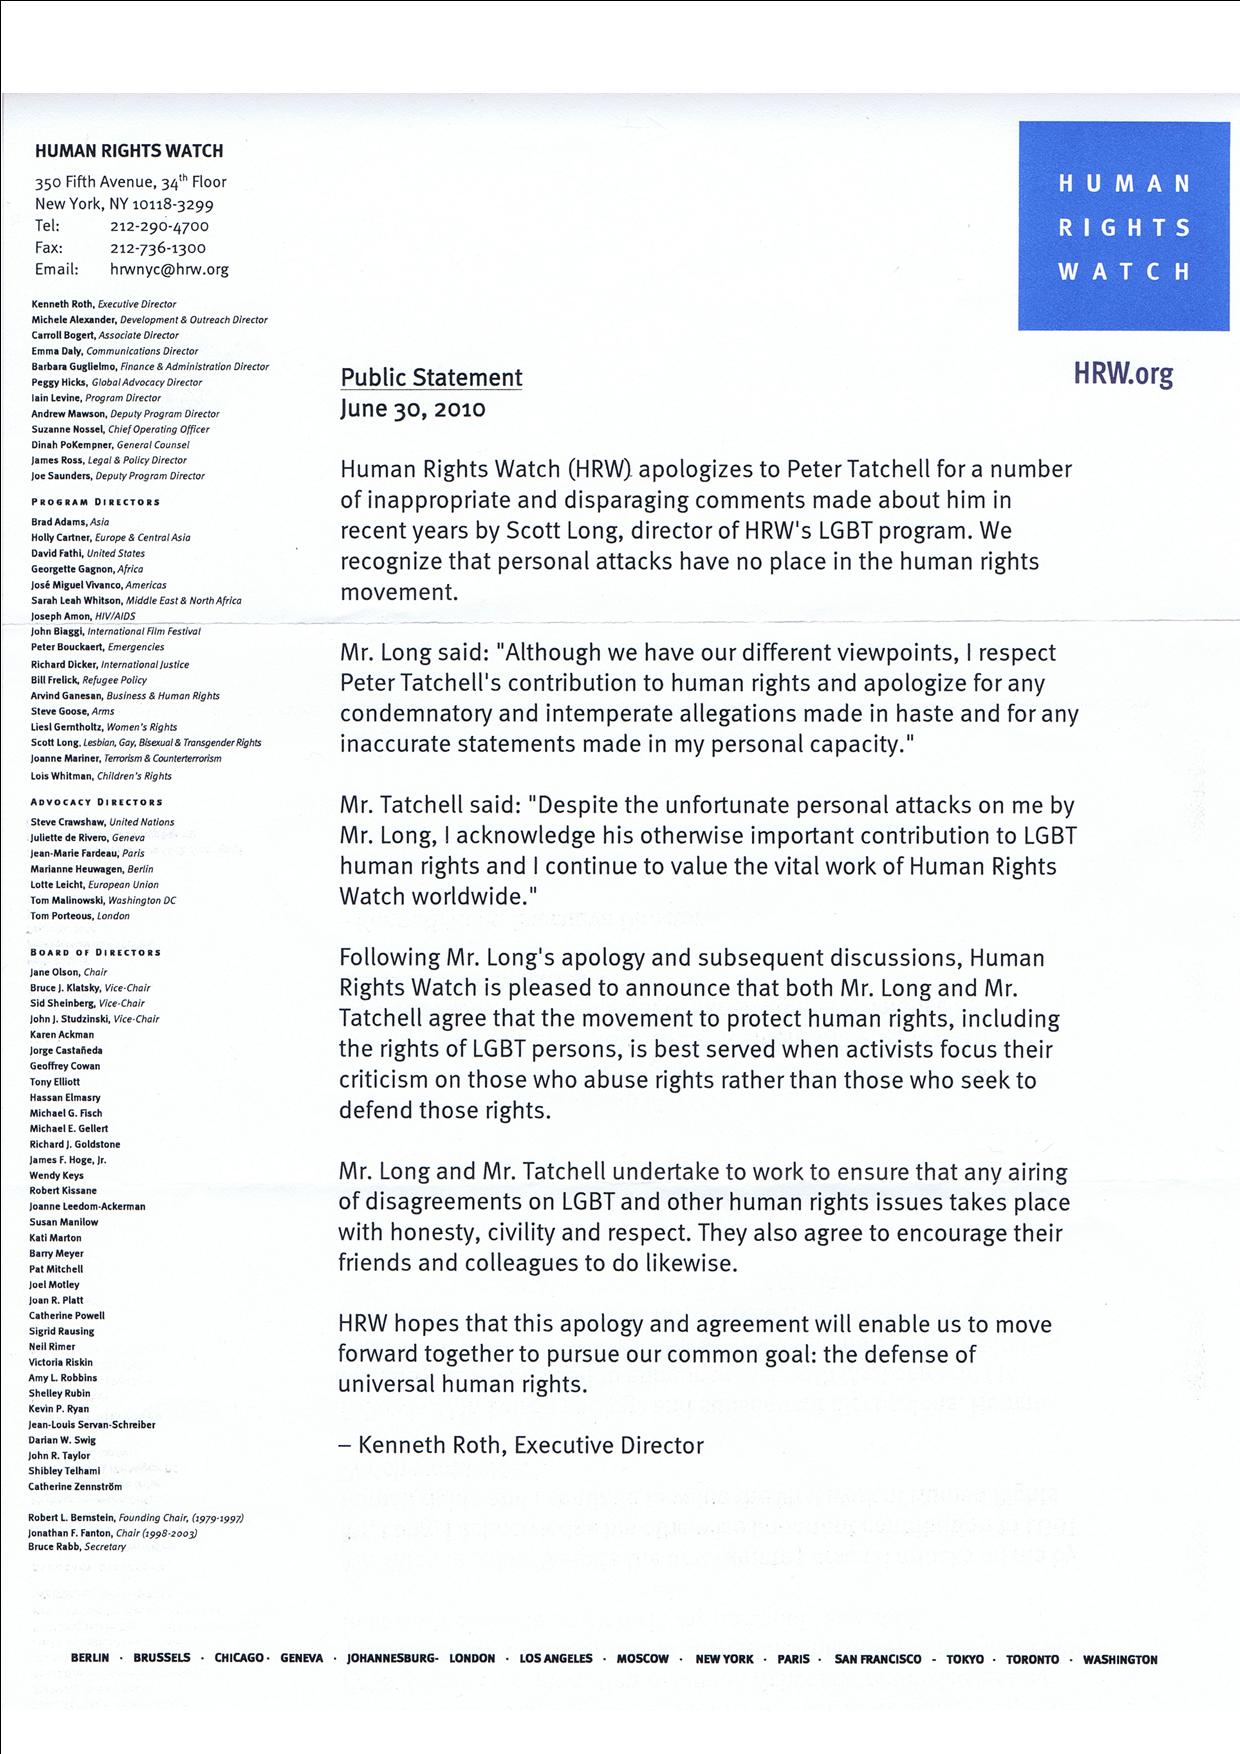 Human Rights Watch apology letter